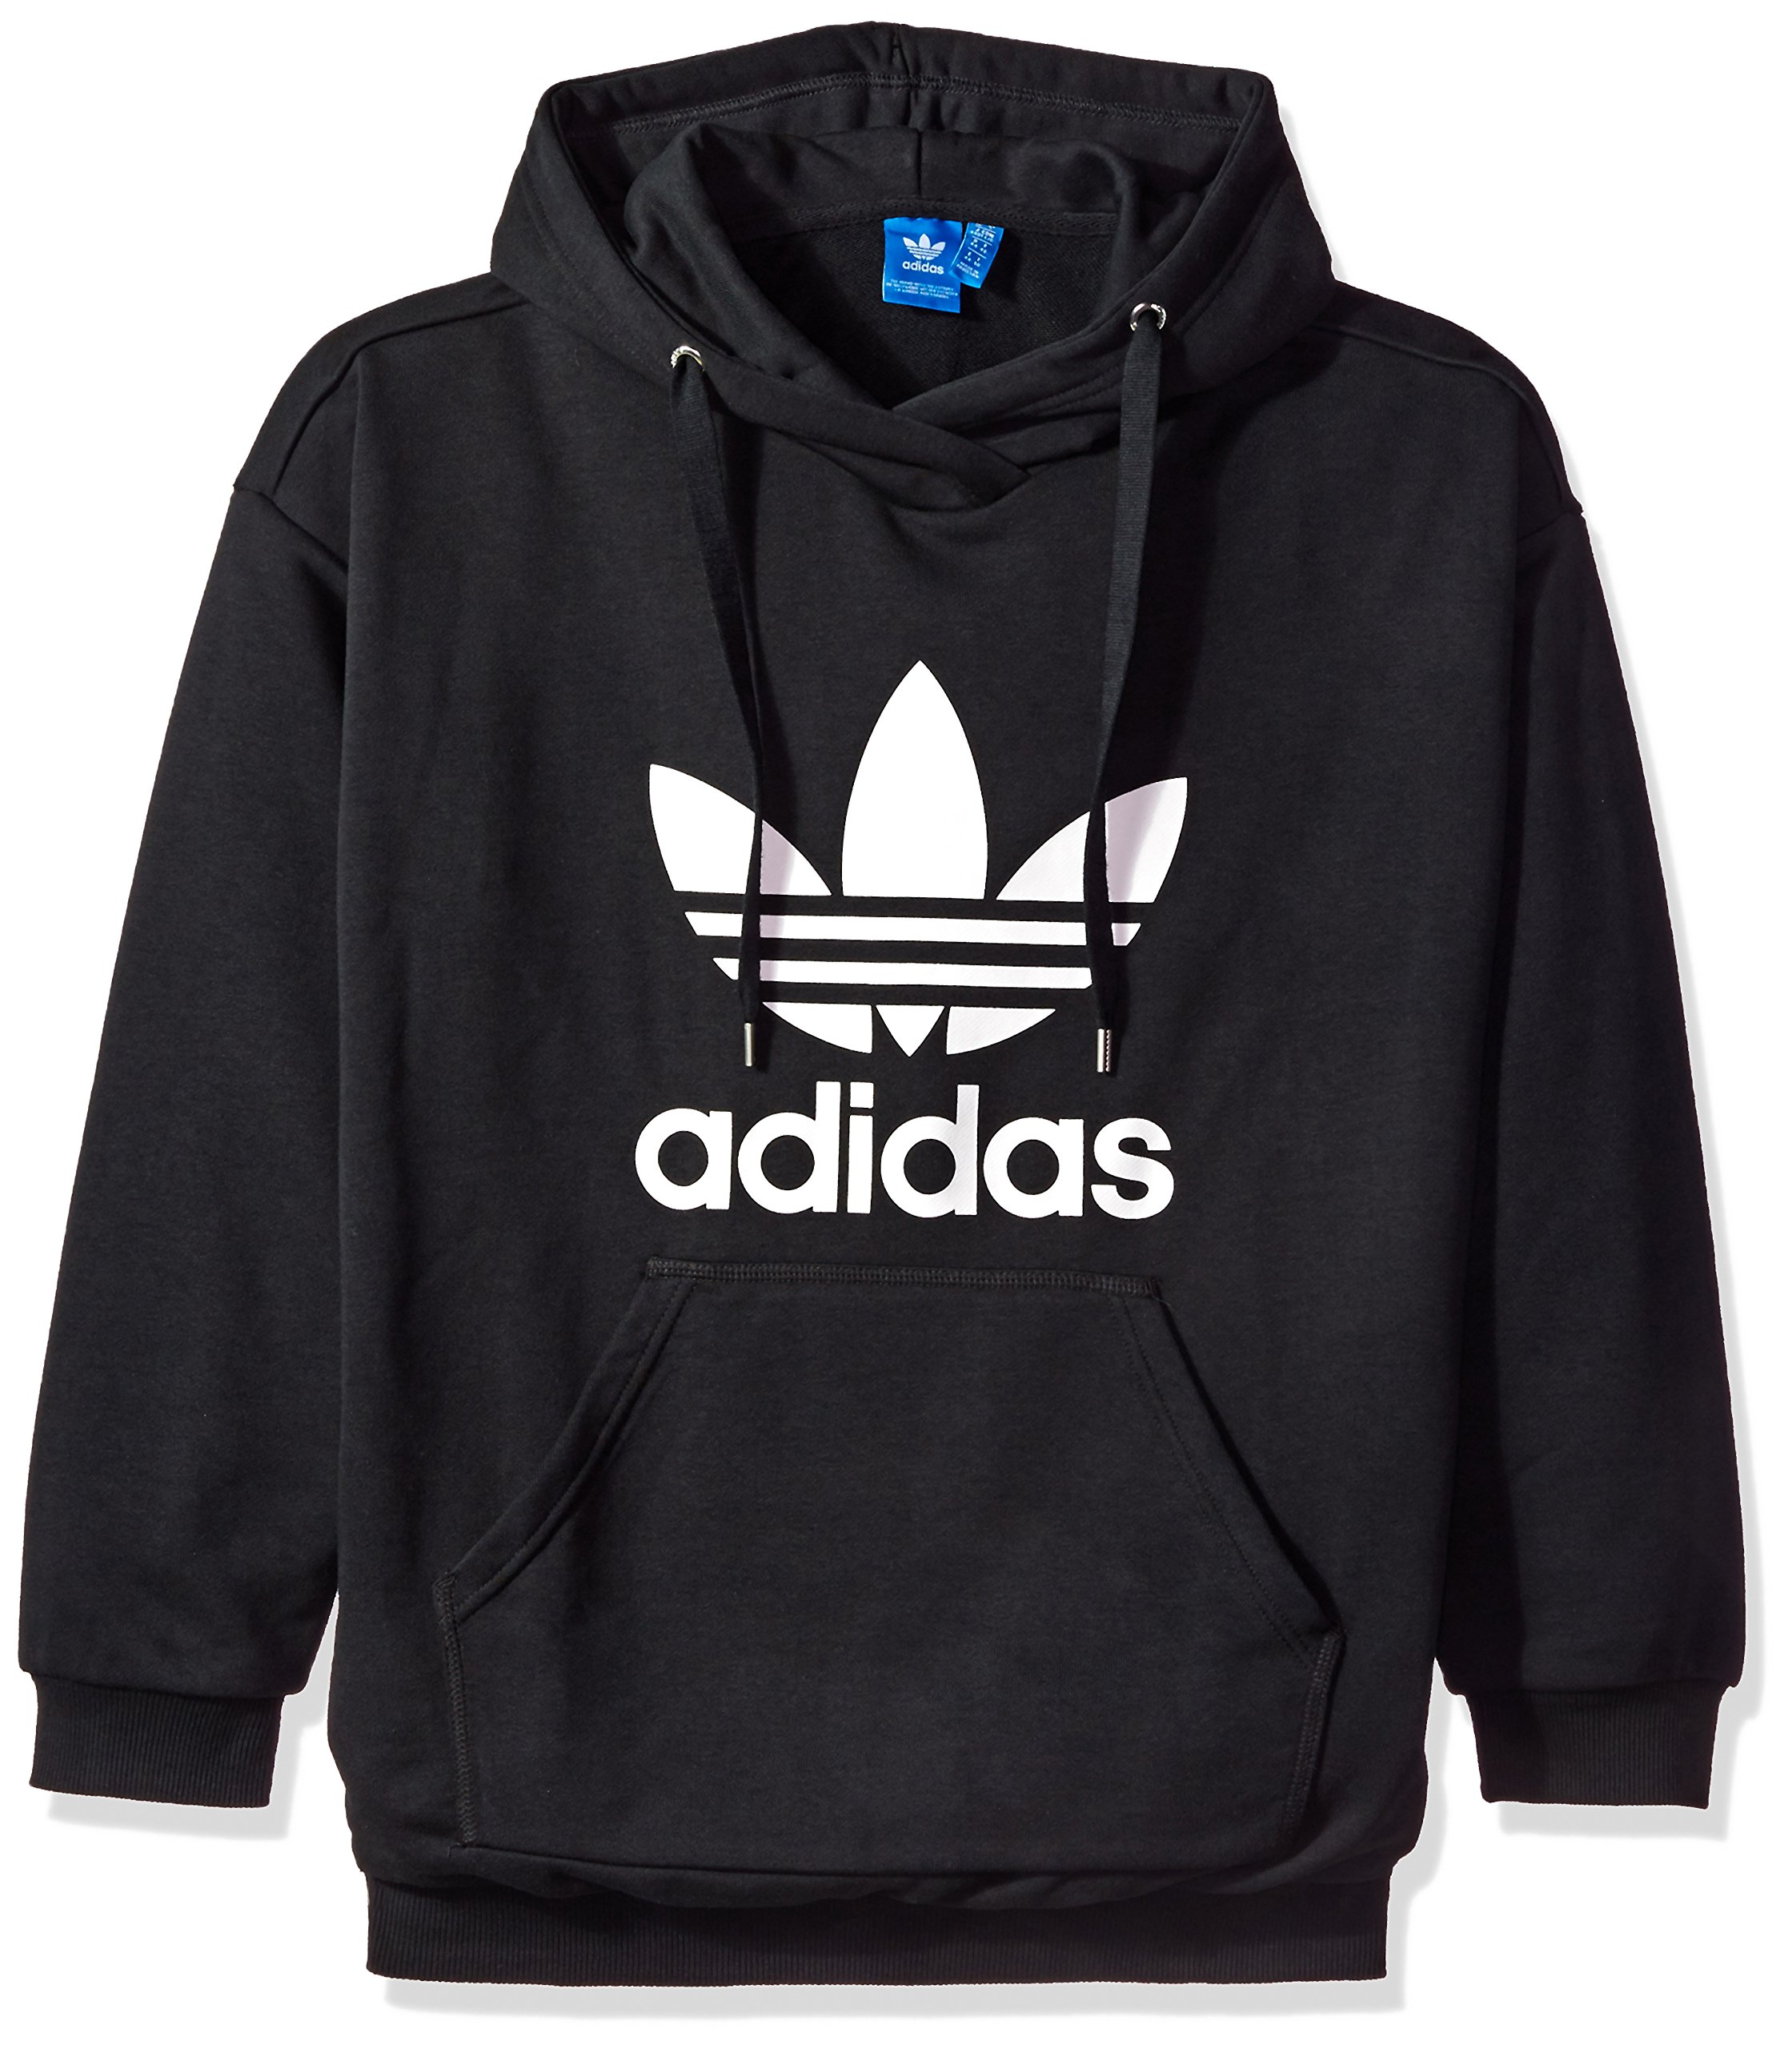 adidas Originals Women's Outerwear | Trefoil Hoodie, Black/French Terry, Large